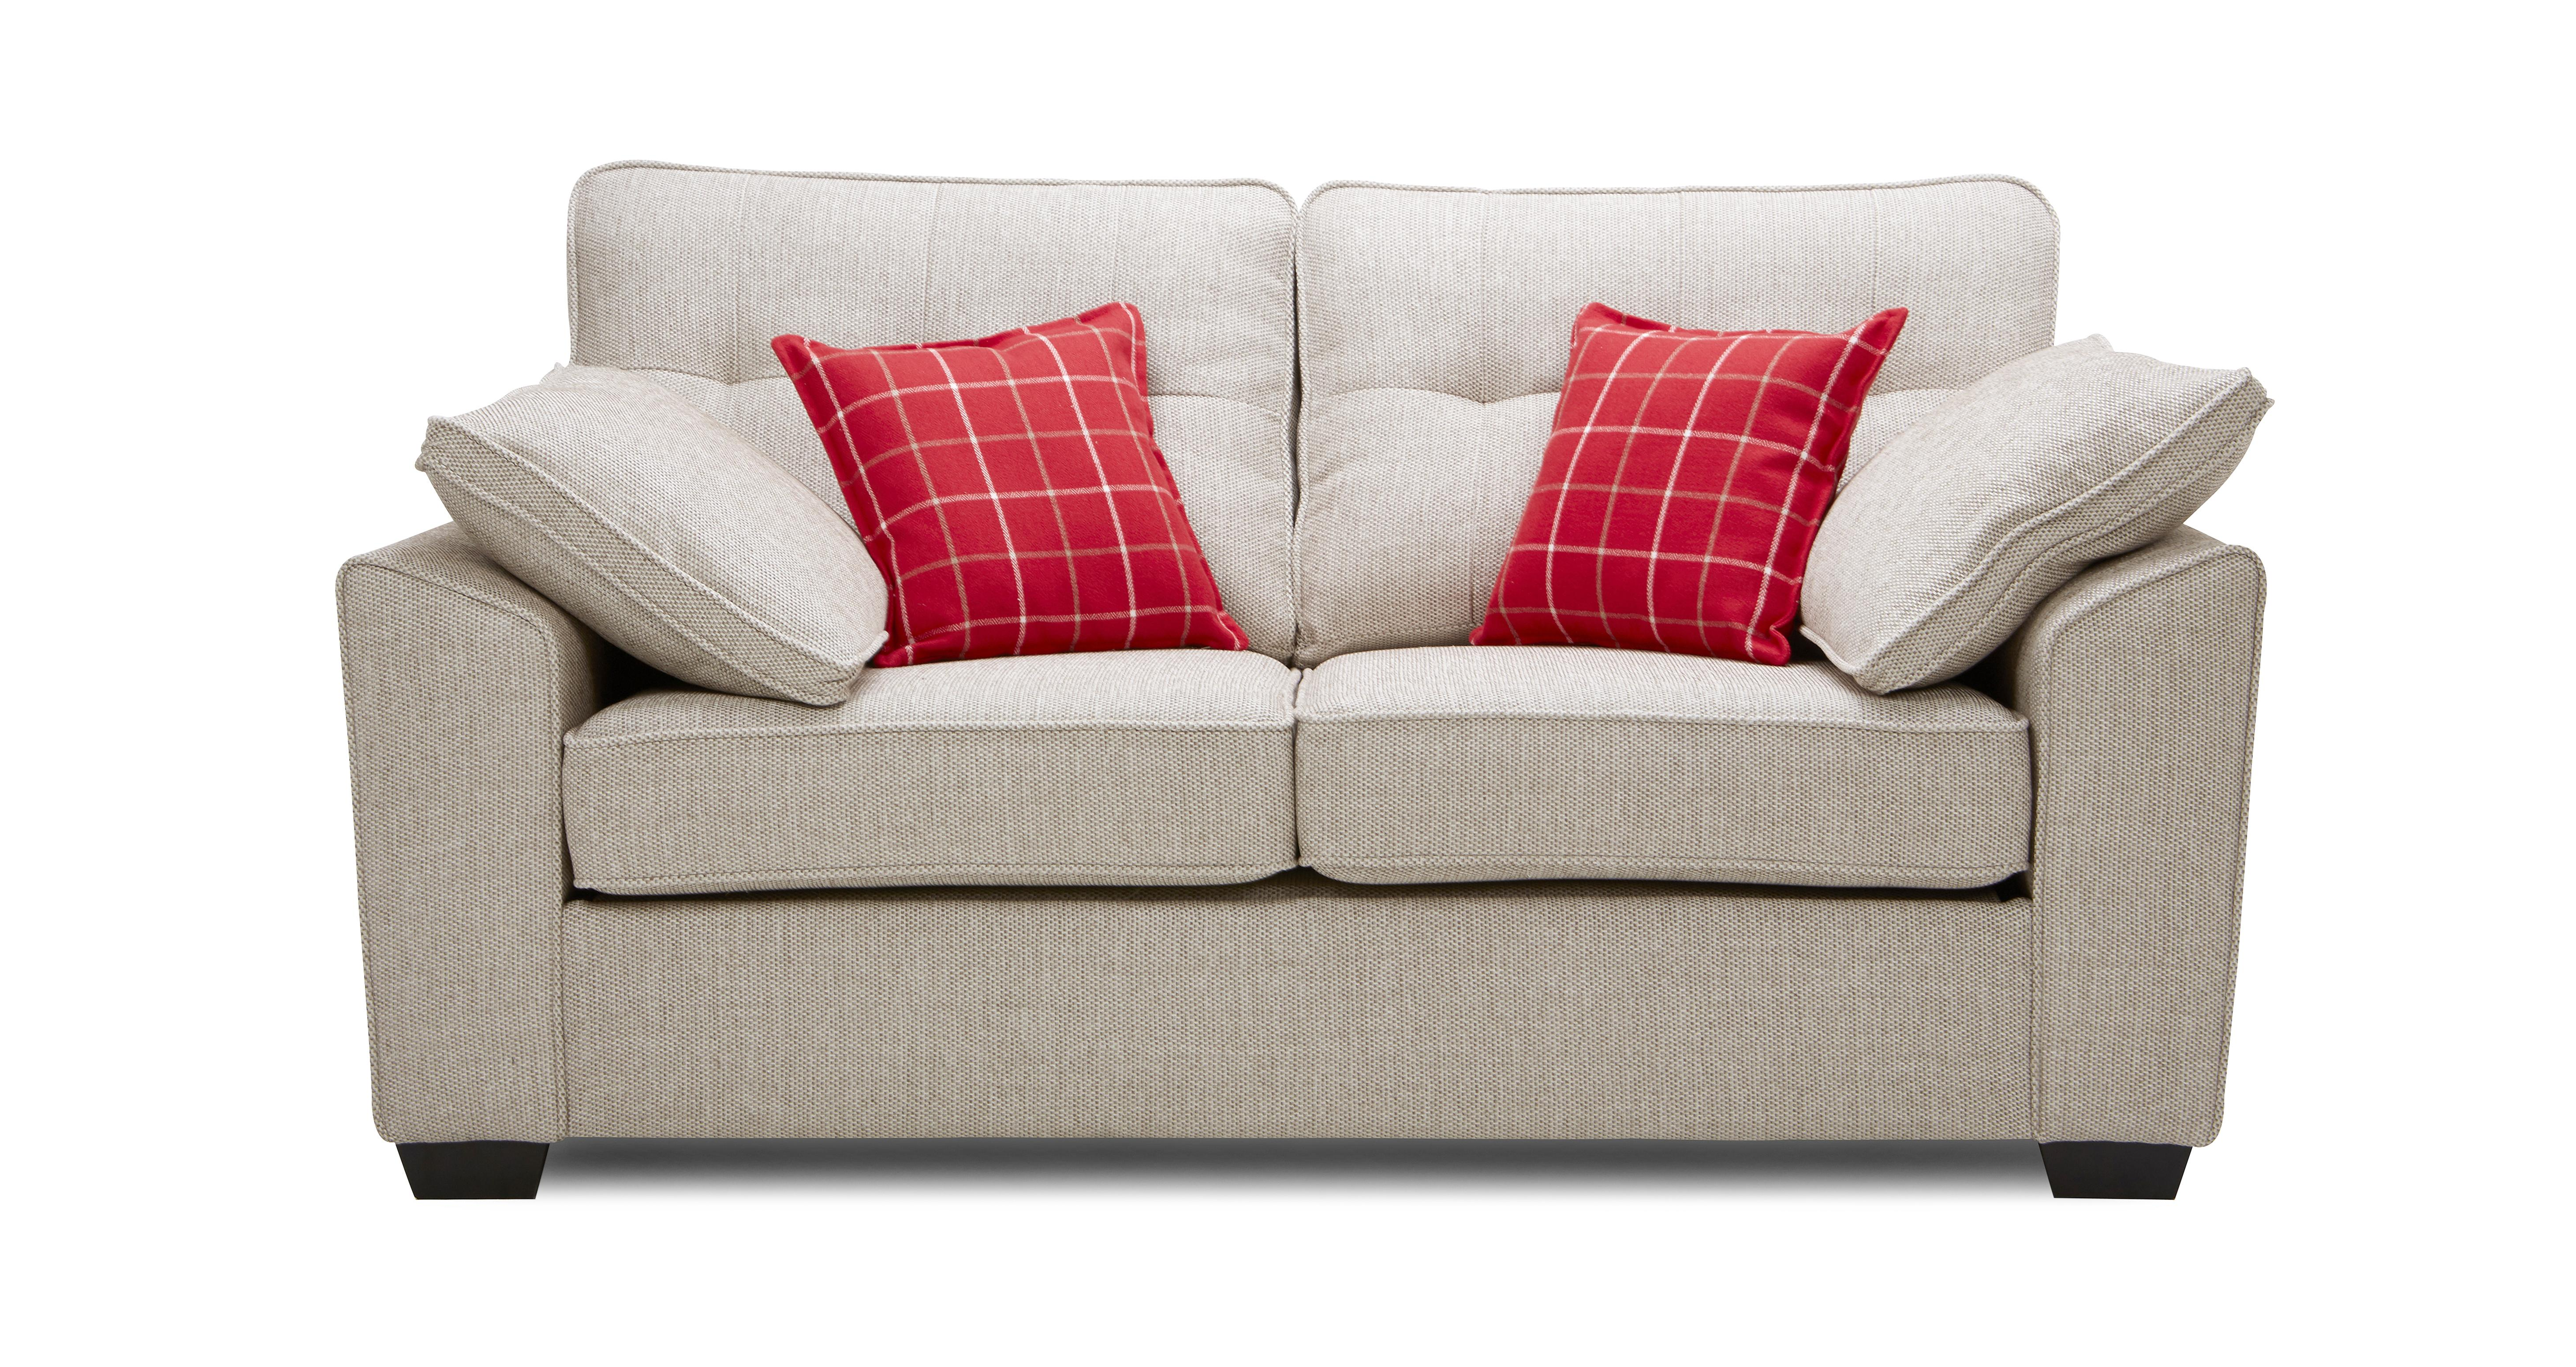 Maxwell 2 Seater Deluxe Sofa Bed Keeper Dfs